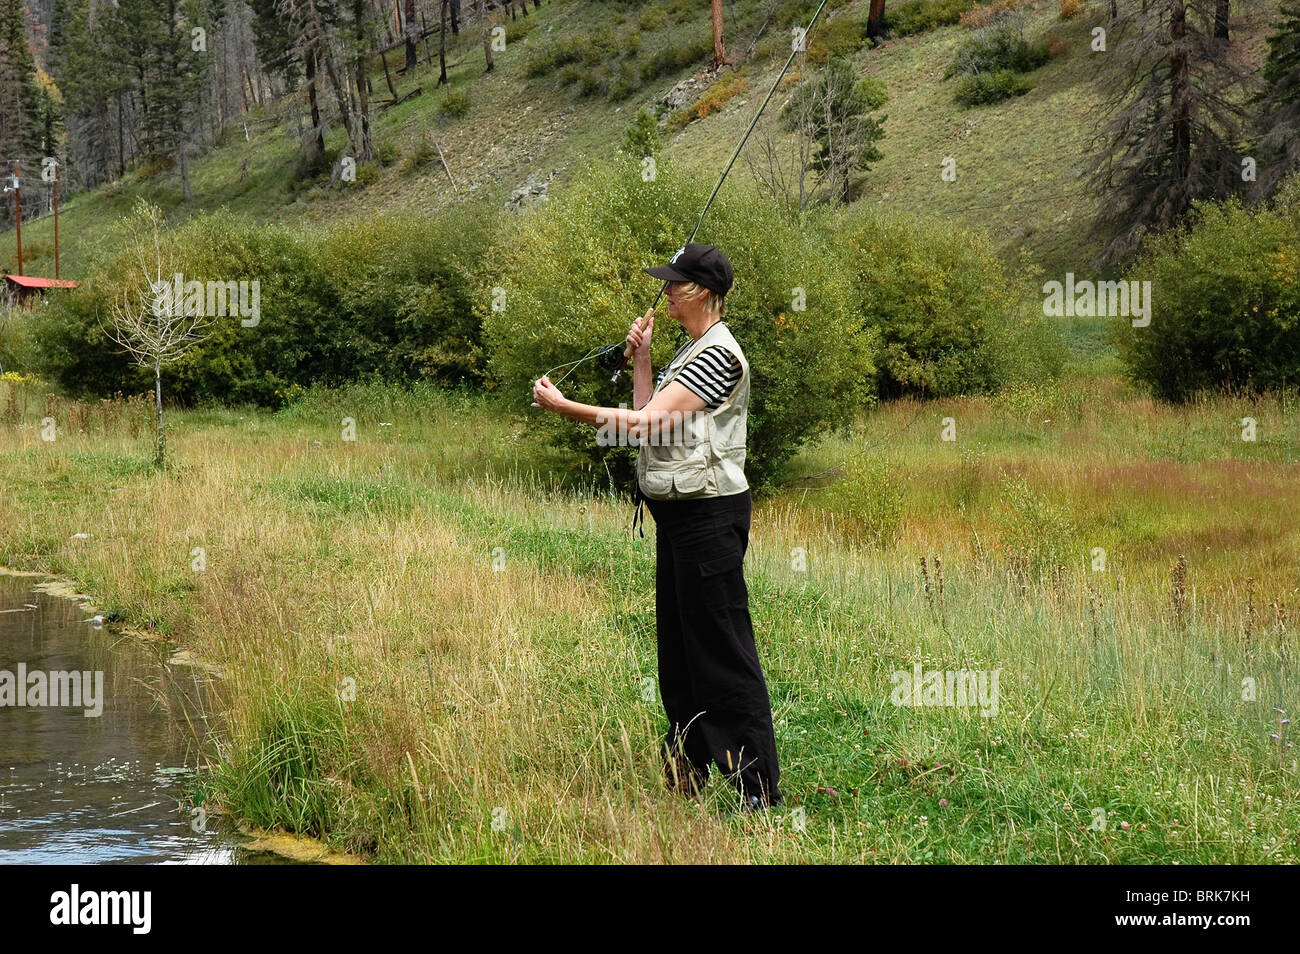 Fly fishing at cow creek ranch pecos nm stock photo for Pecos new mexico fishing